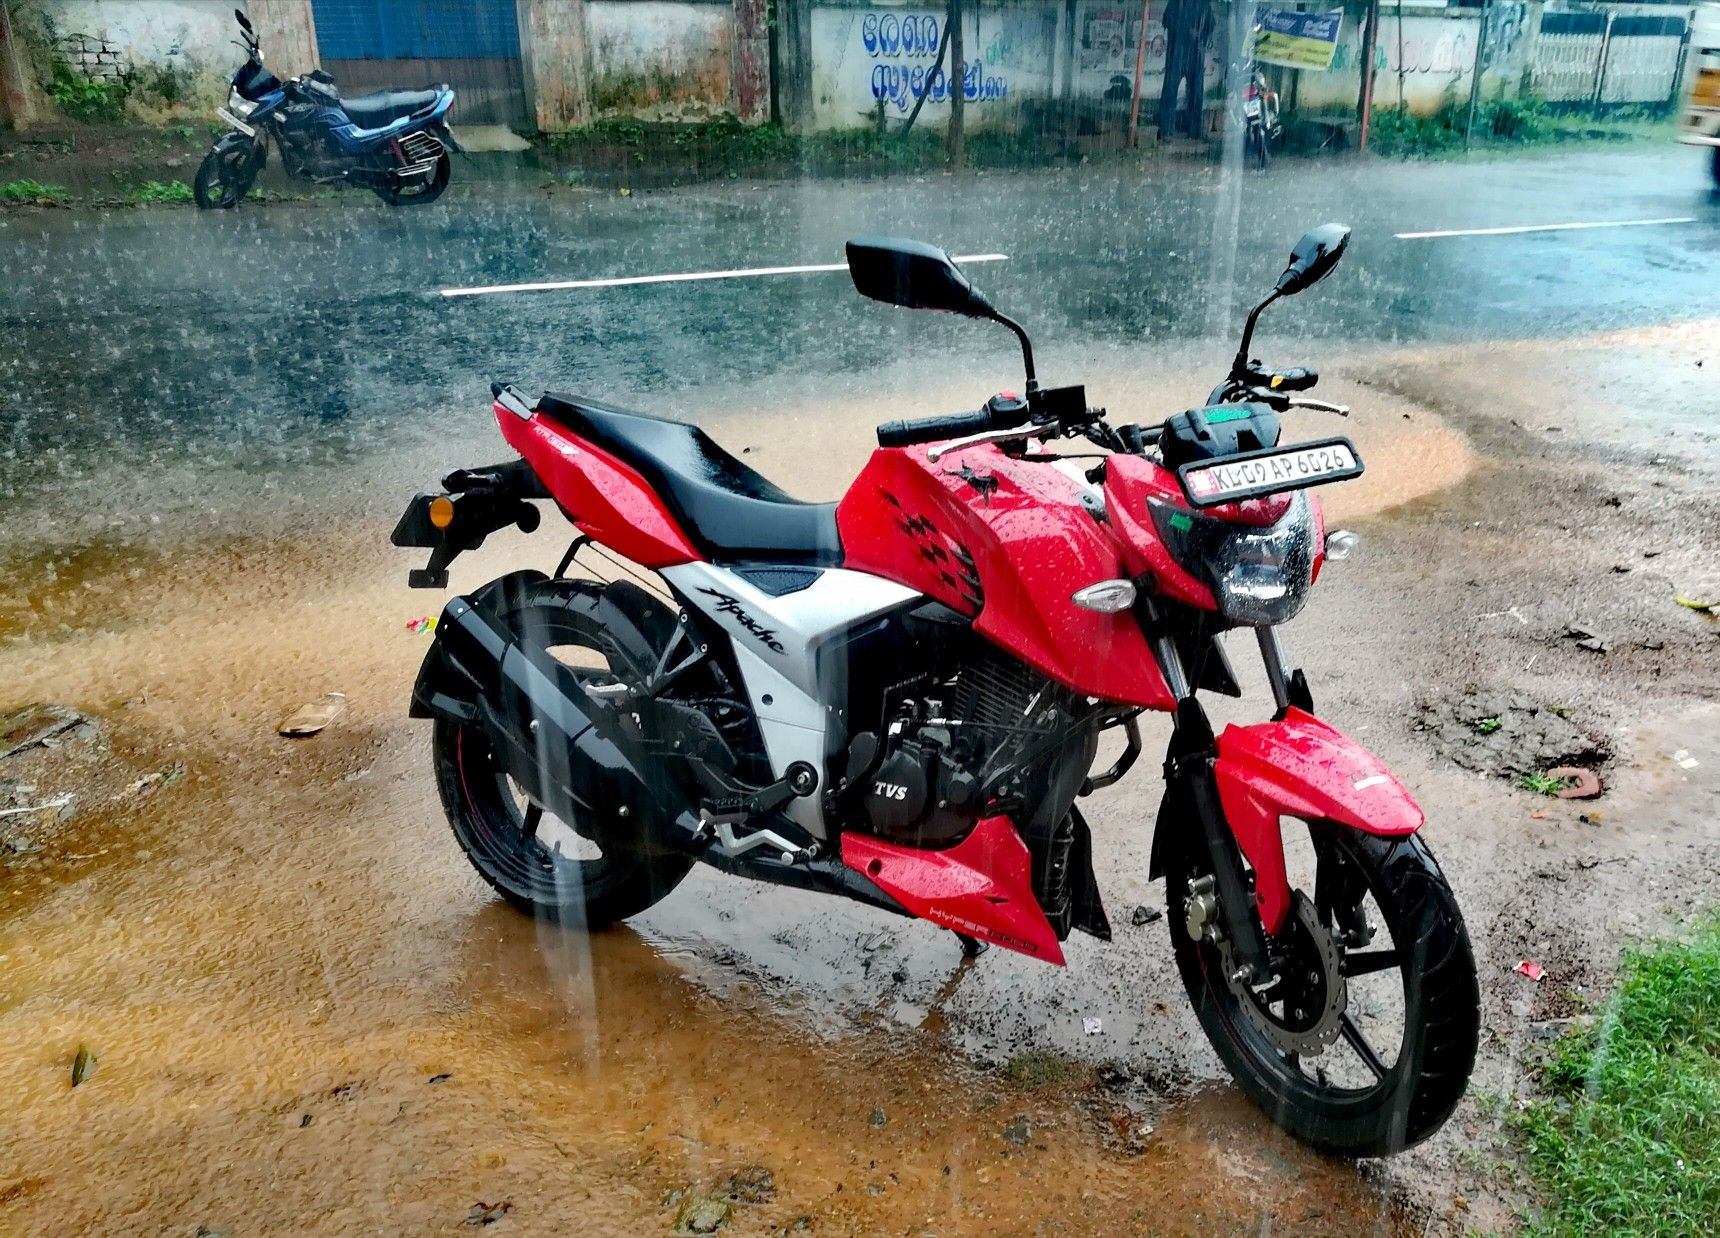 The Tvs Apache Rtr 160 4v Spare Parts Online Shopping {Forum